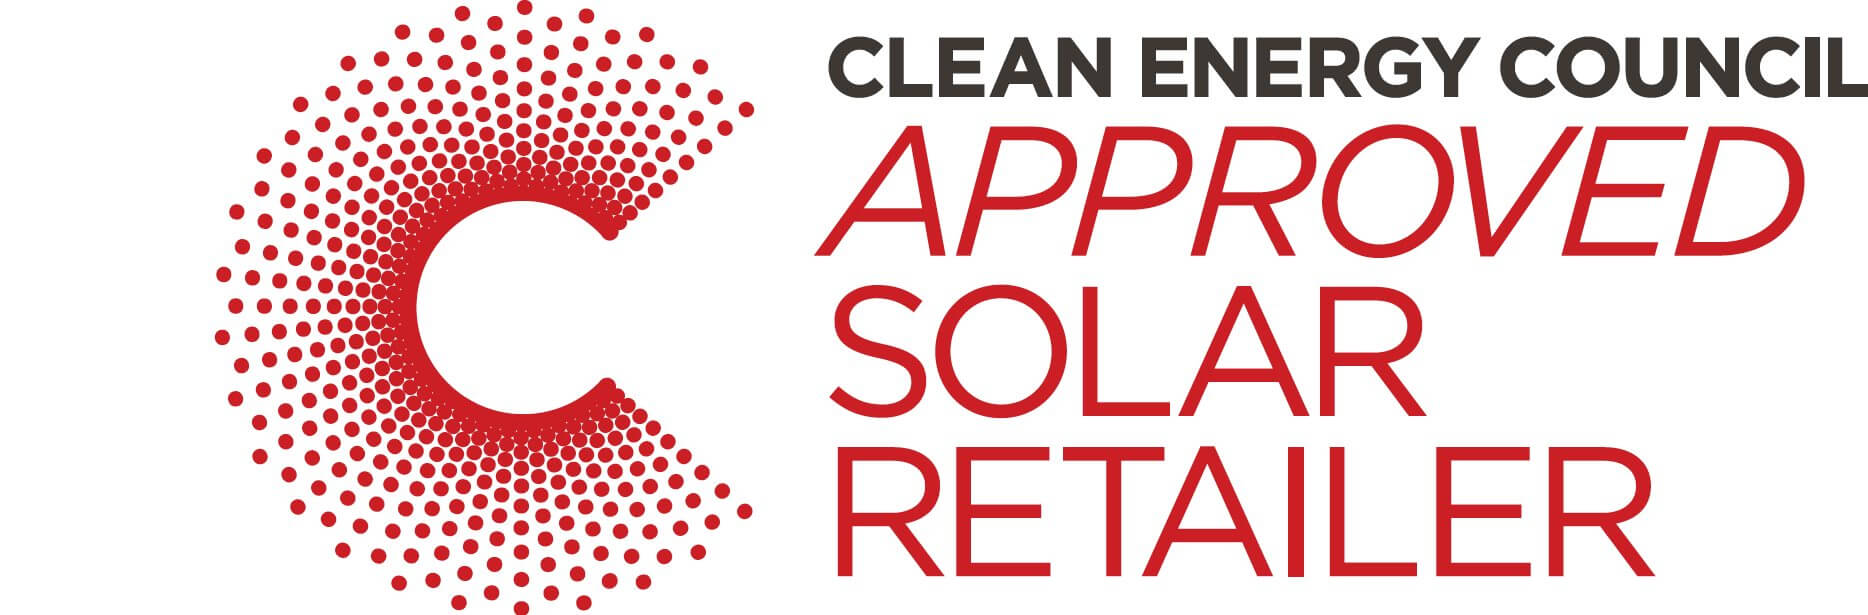 Solar Panels Geelong Clean Energy Council Approved Solar Retailer